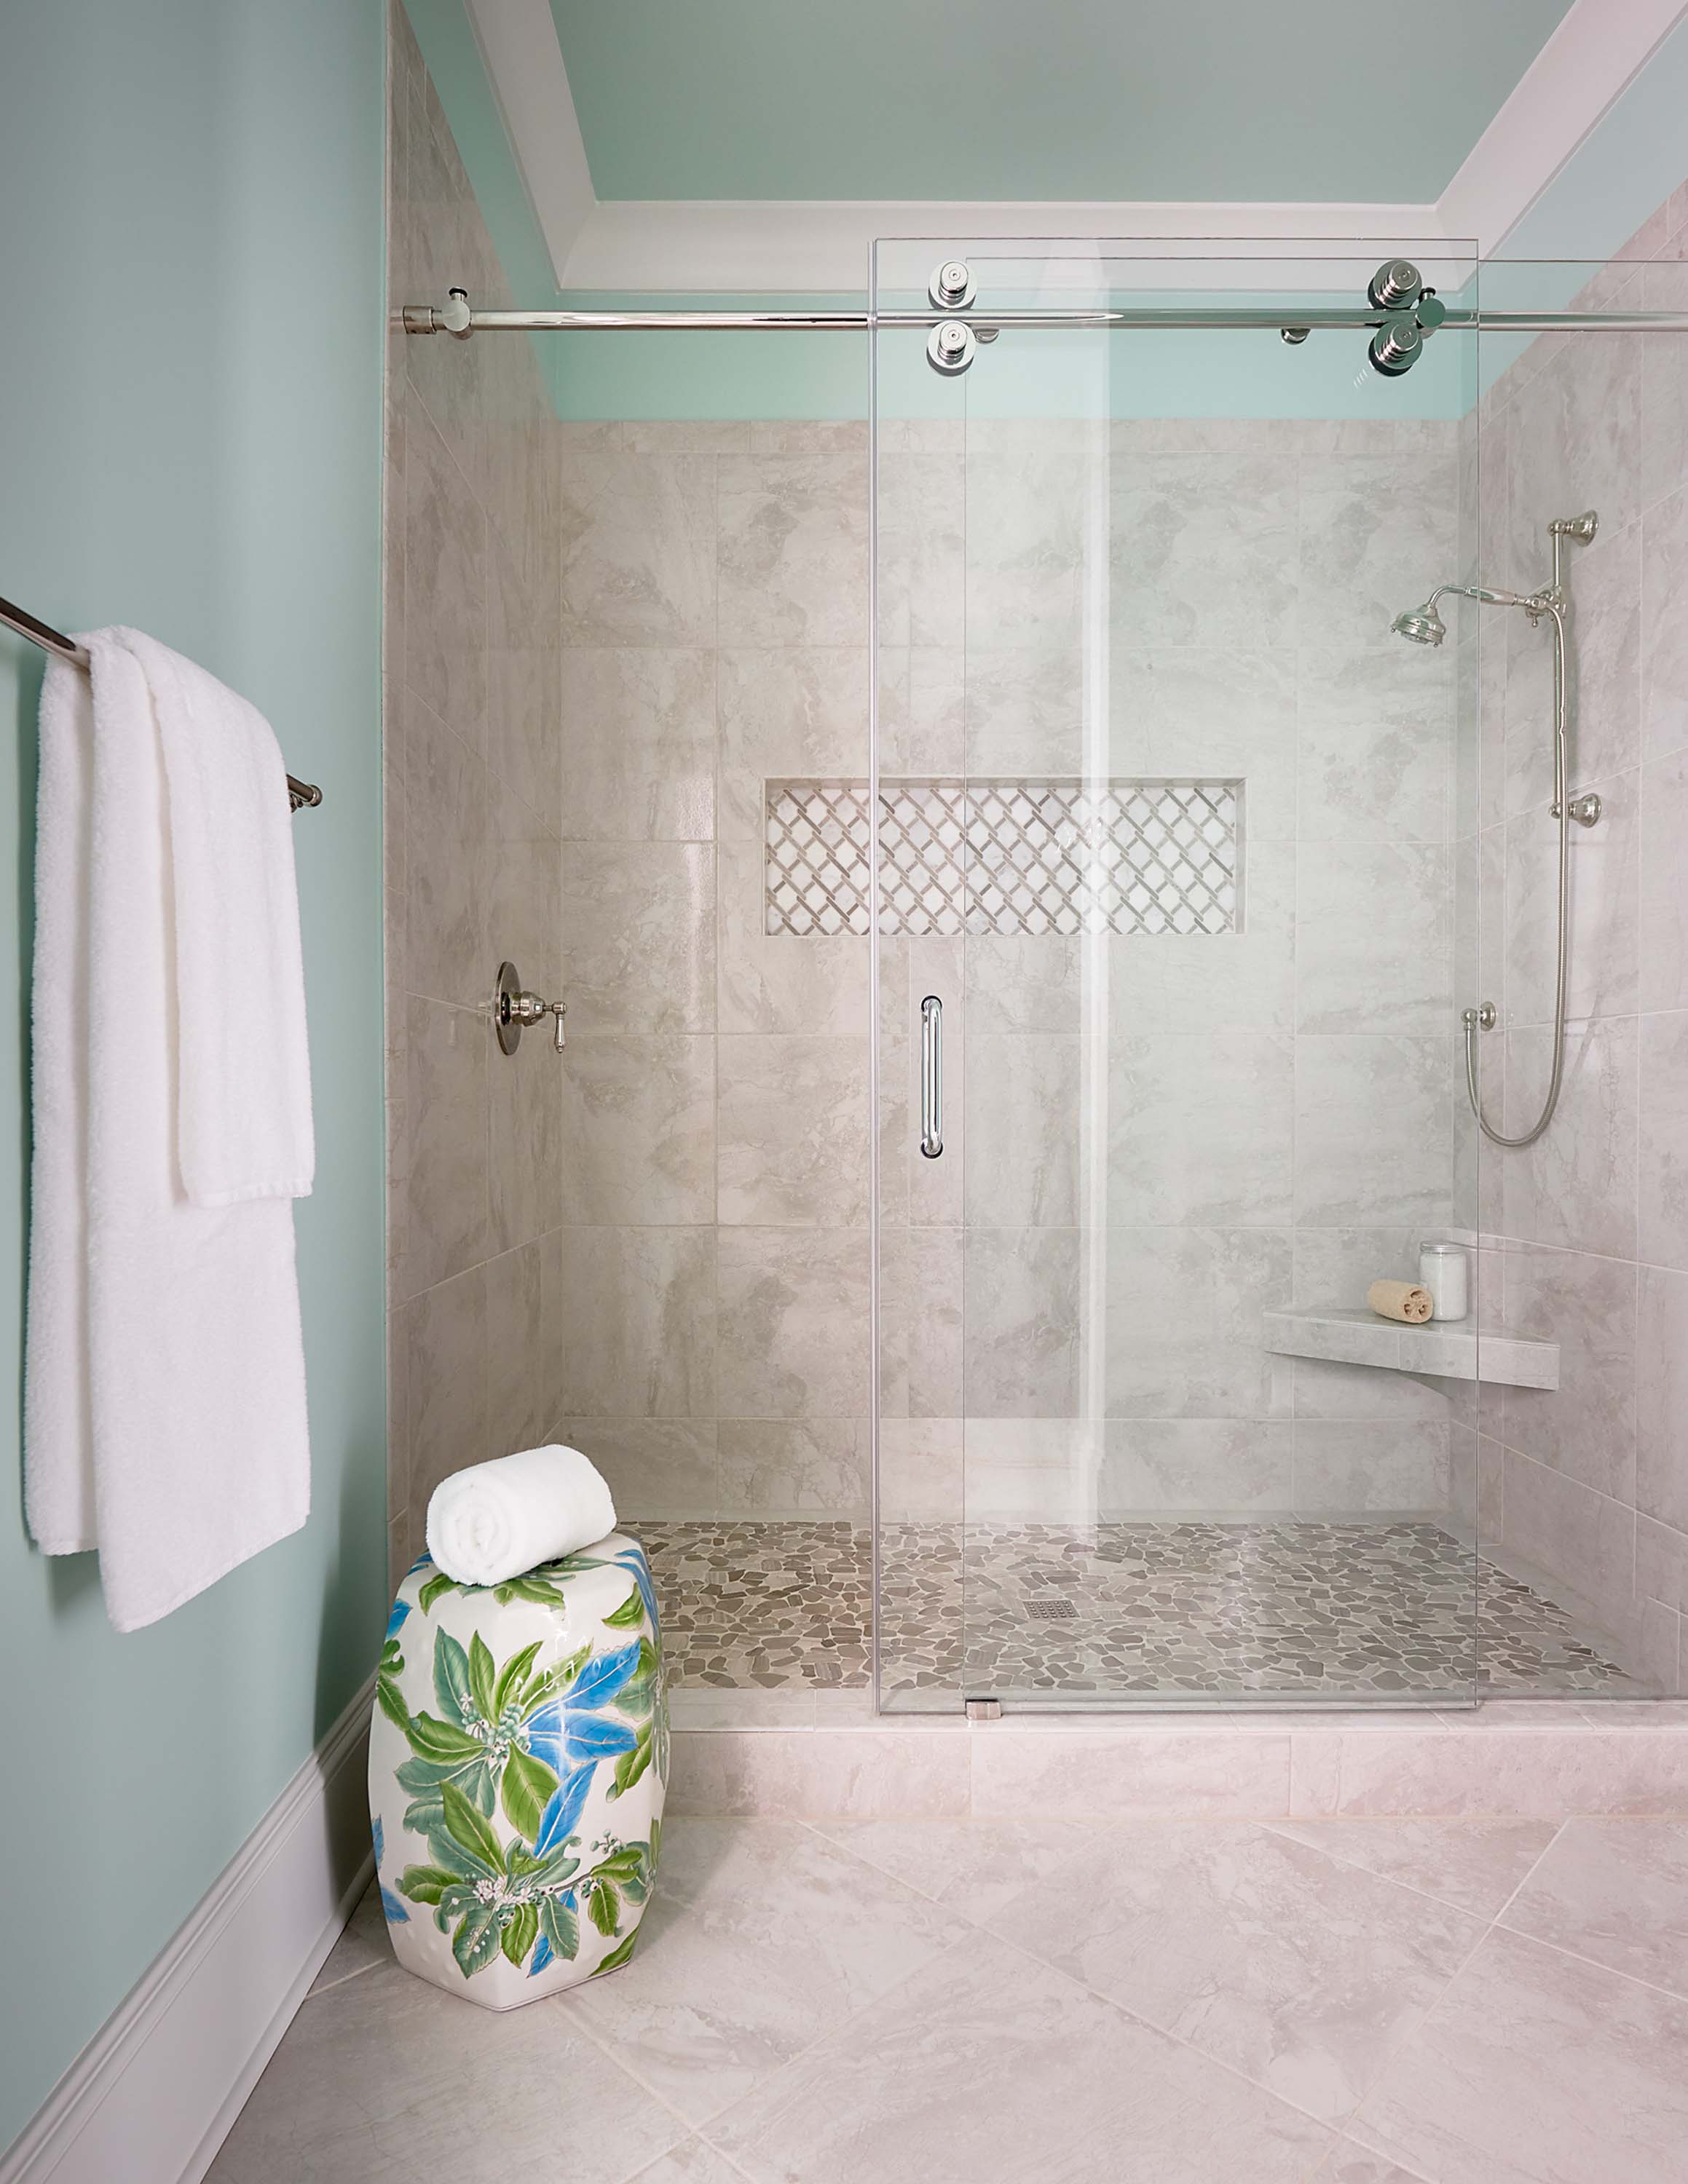 Guest bathroom with sliding glass shower door, neutral tile with aqua accents, garden seat